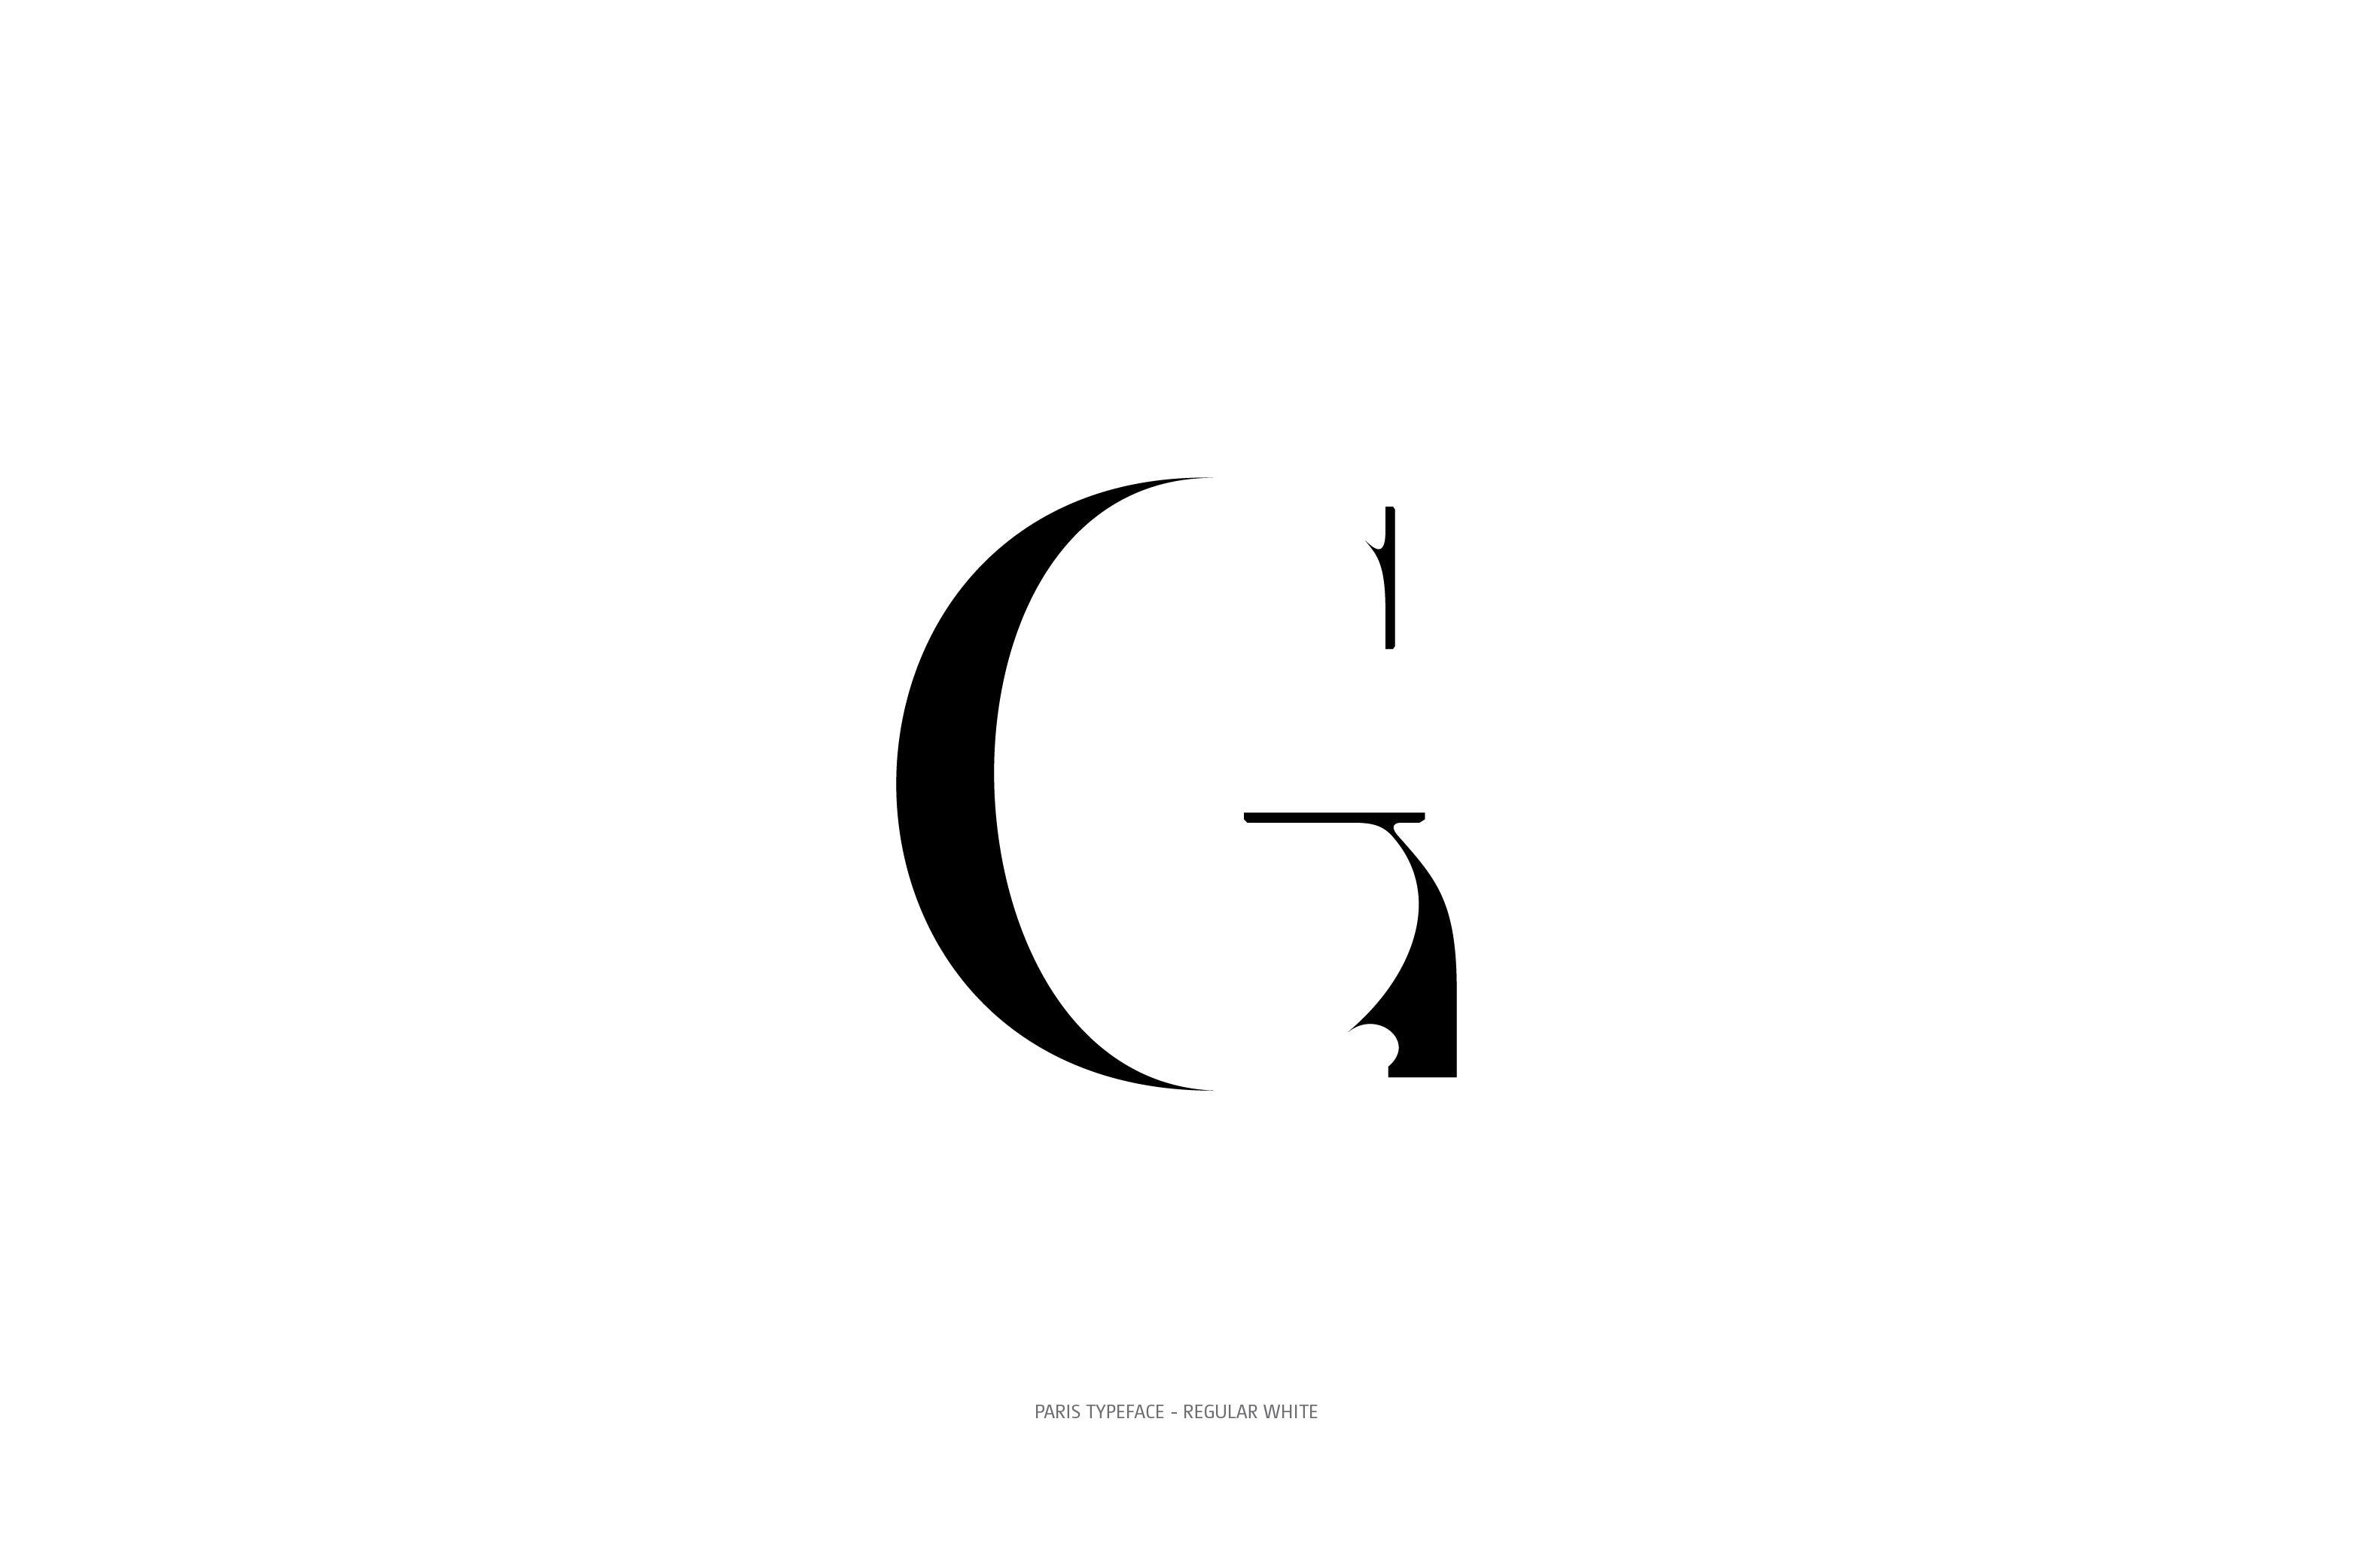 Paris Typeface Regular White G